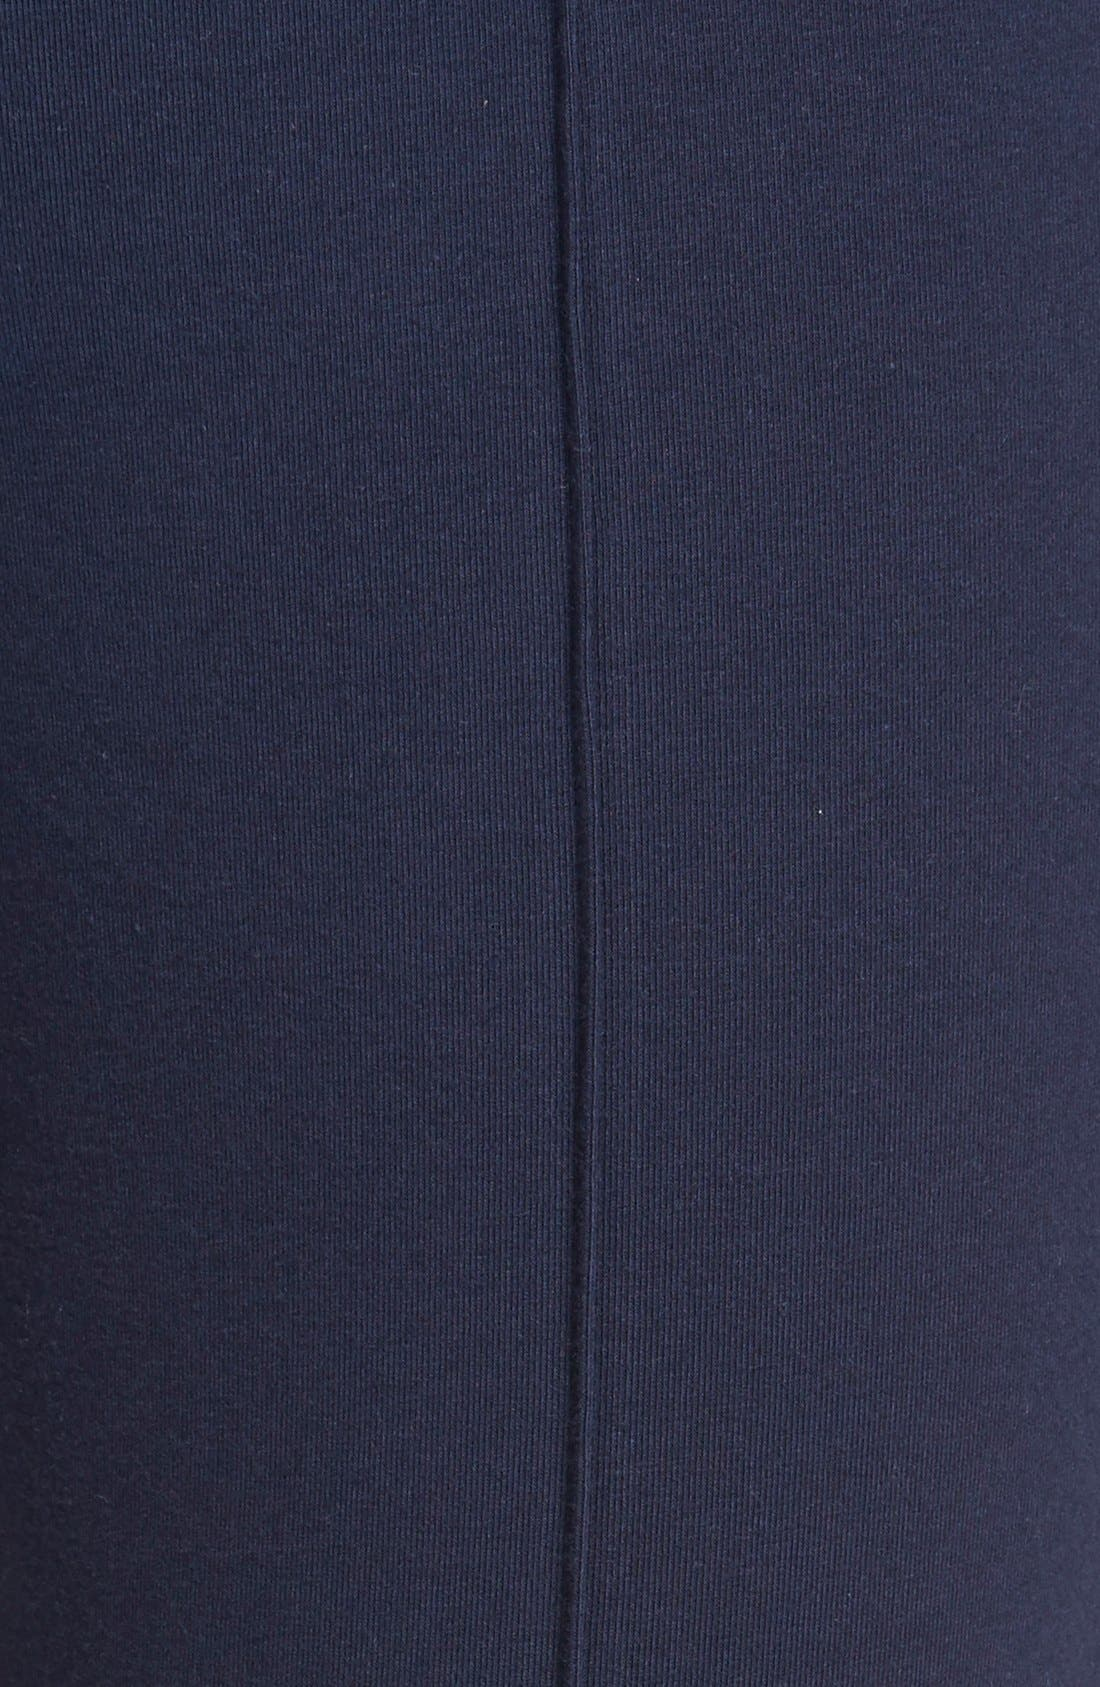 Alternate Image 3  - Chaus Pintuck Seam Leggings